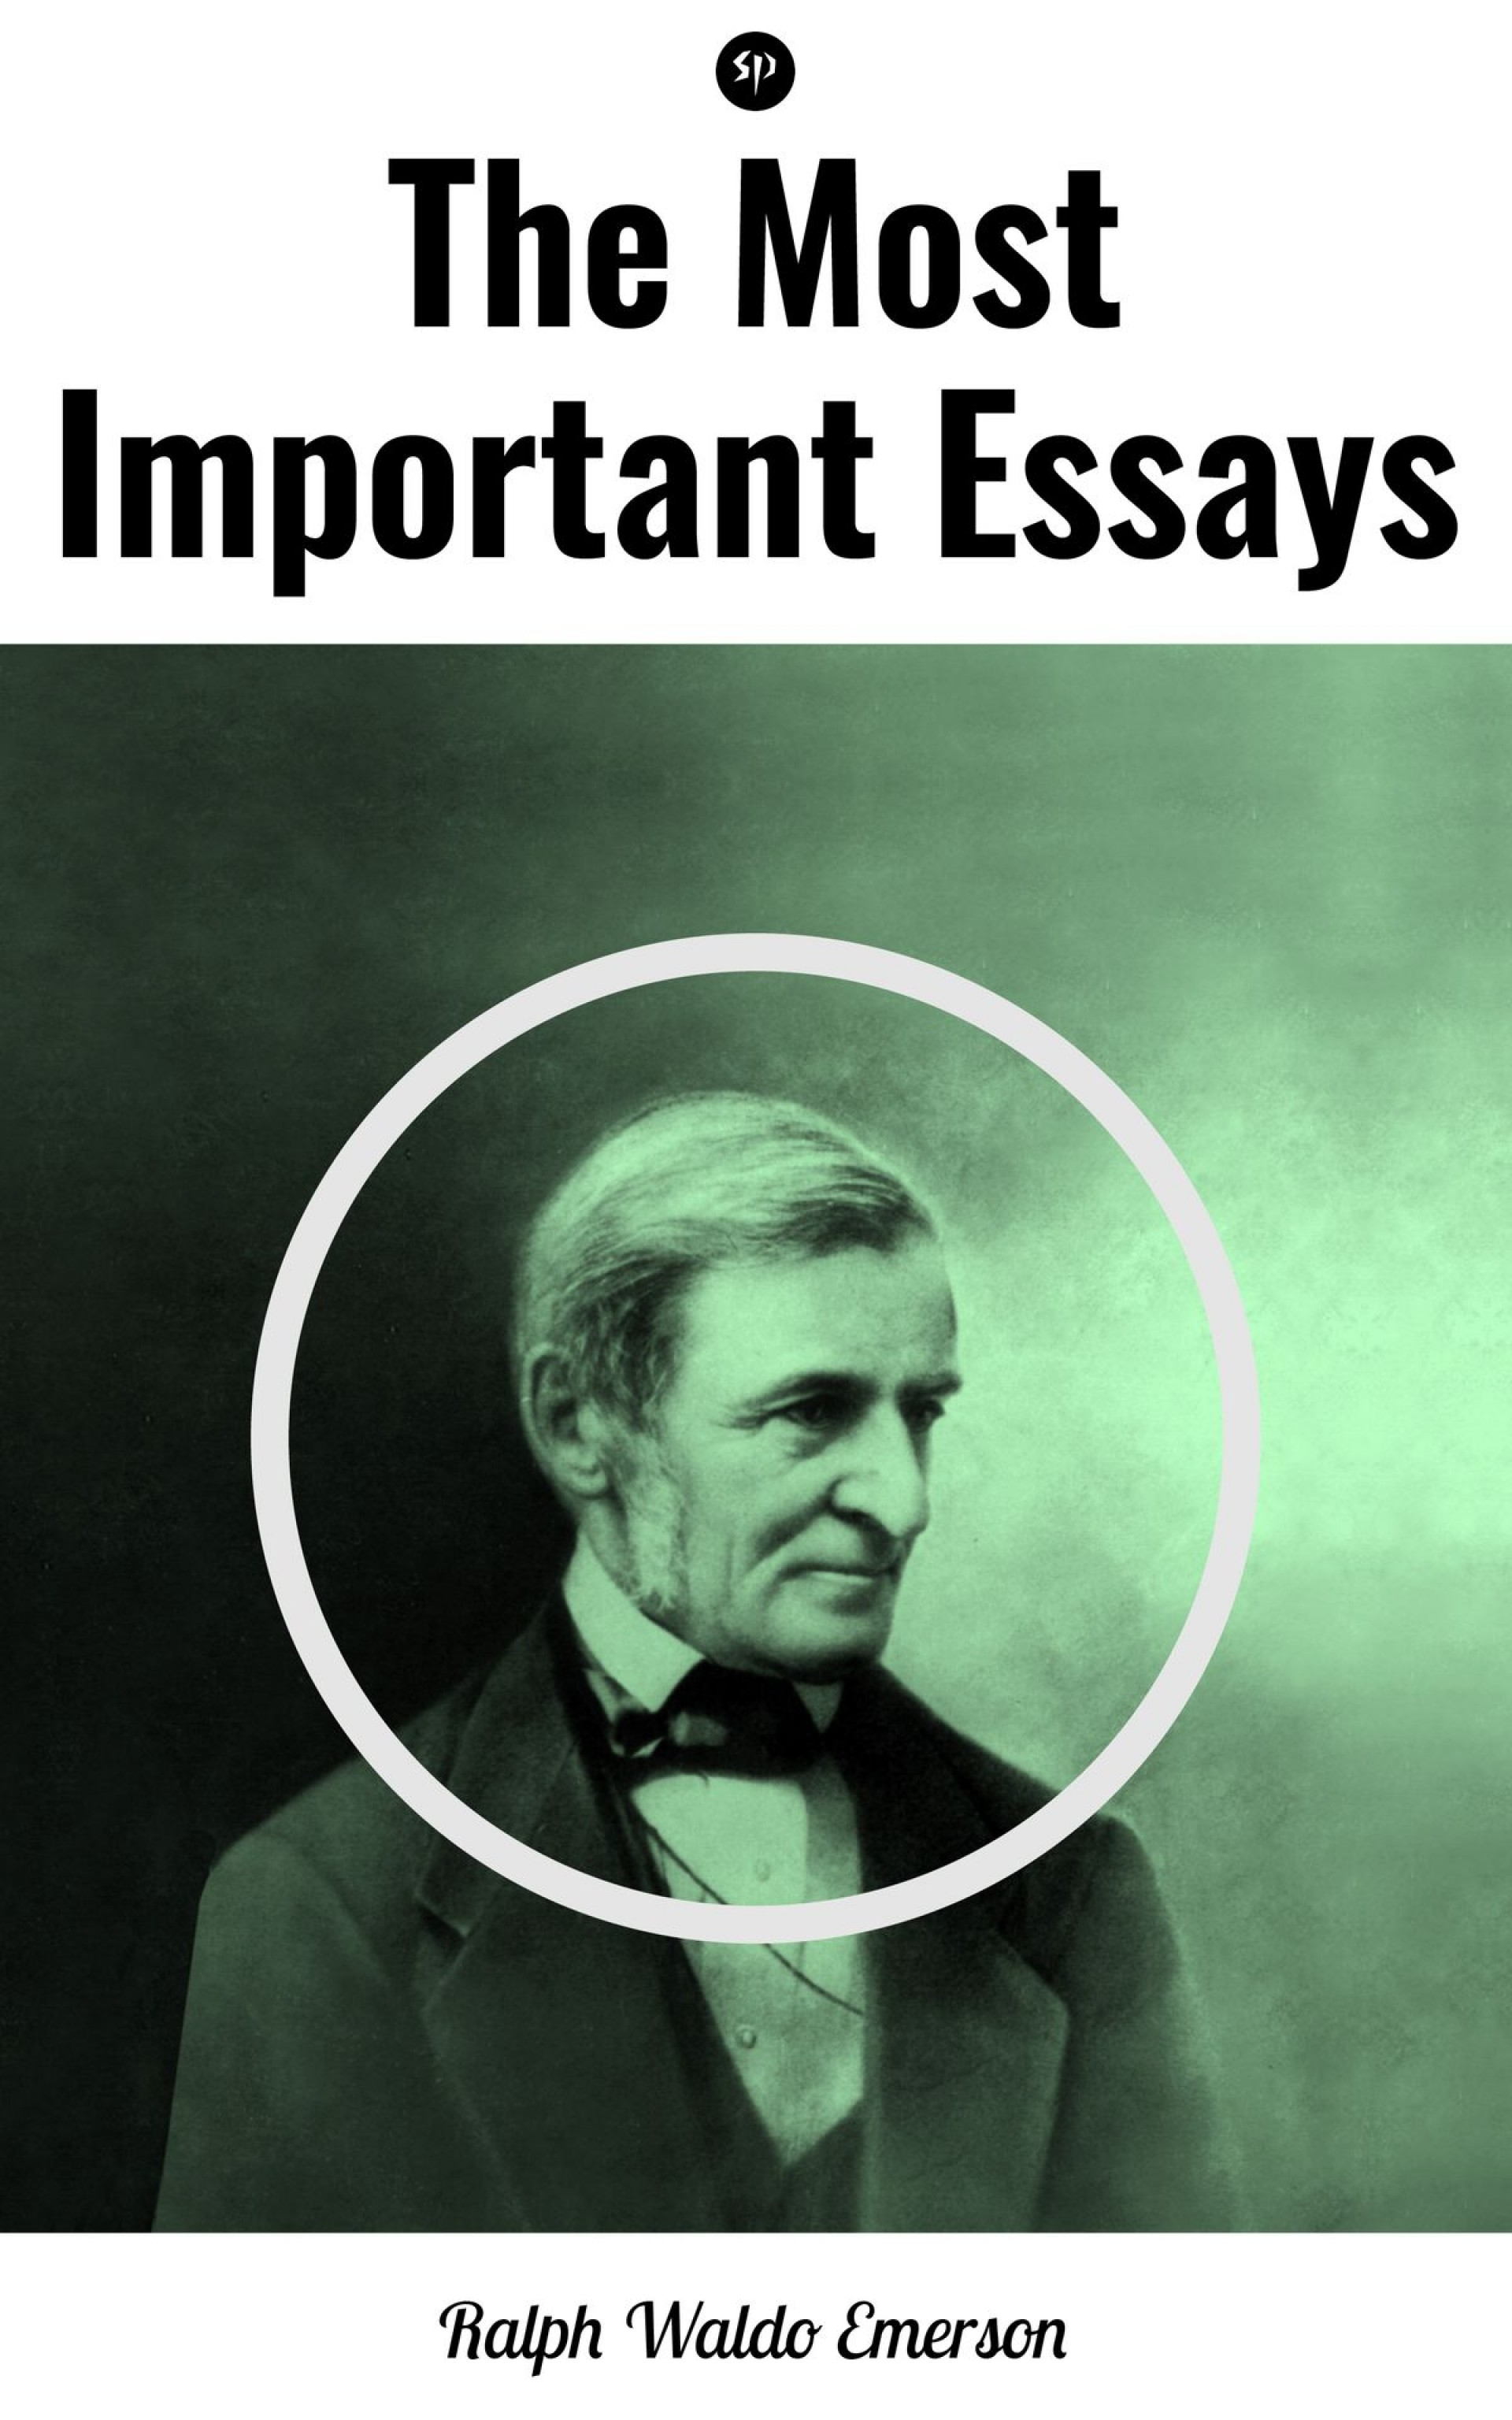 019 Essay Example Ralph Waldo Emerson Essays The Most Important Unusual Nature And Selected By Pdf Download First Second Series 1920